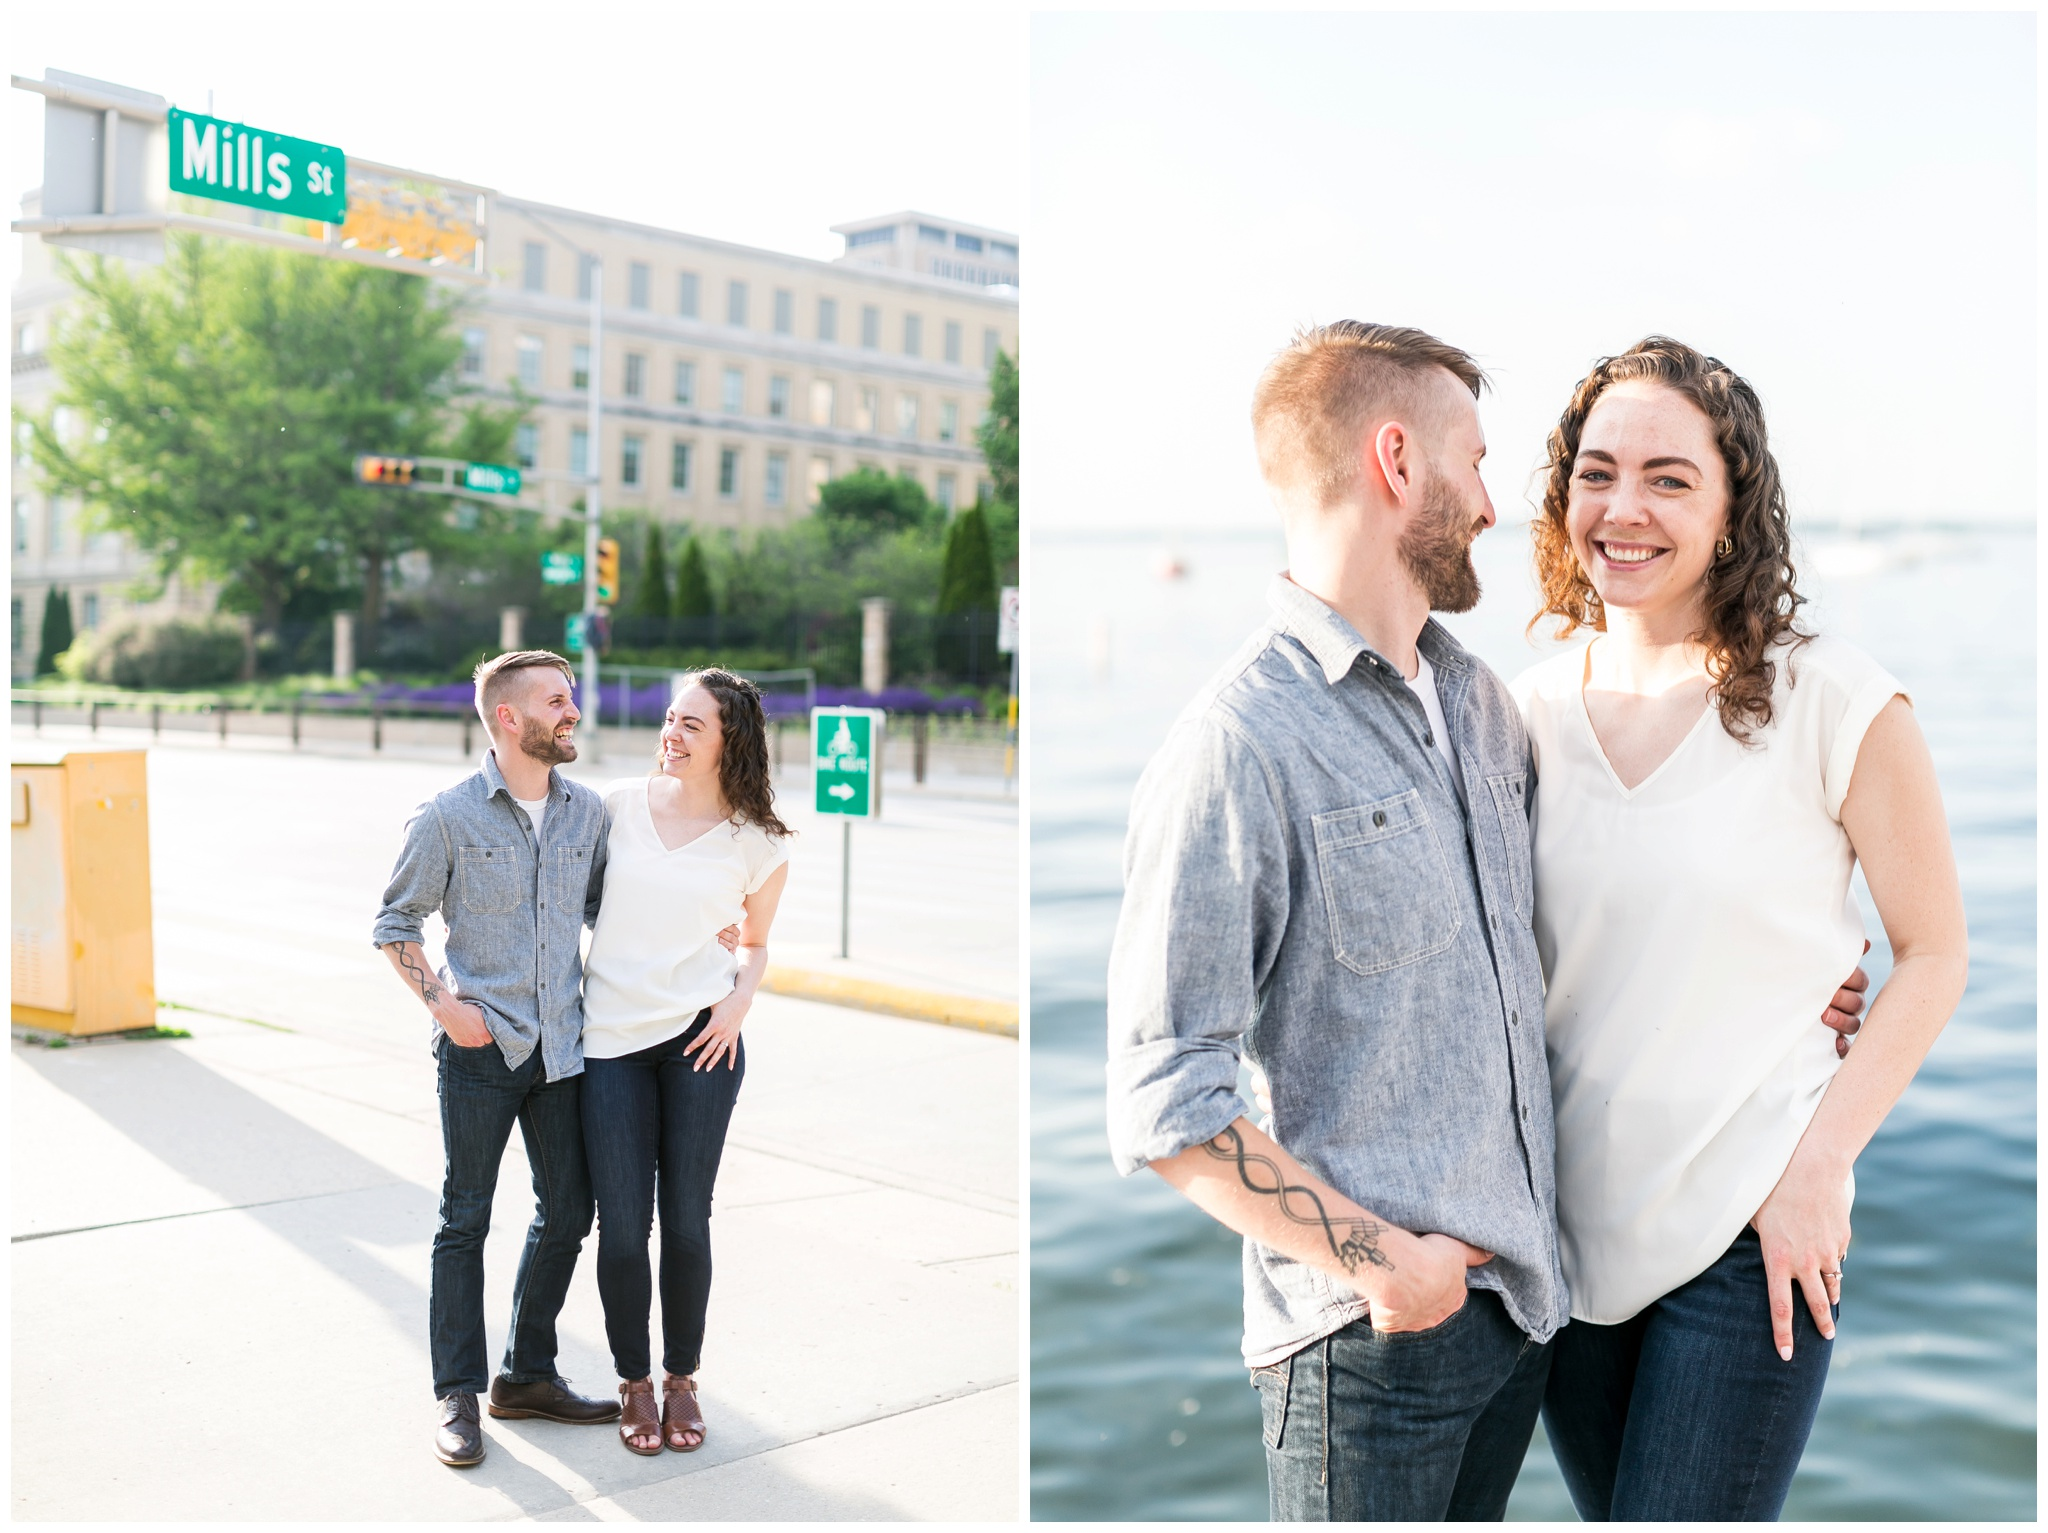 memorial_union_engagement_session_madison_wisconsin_photographers_3792.jpg